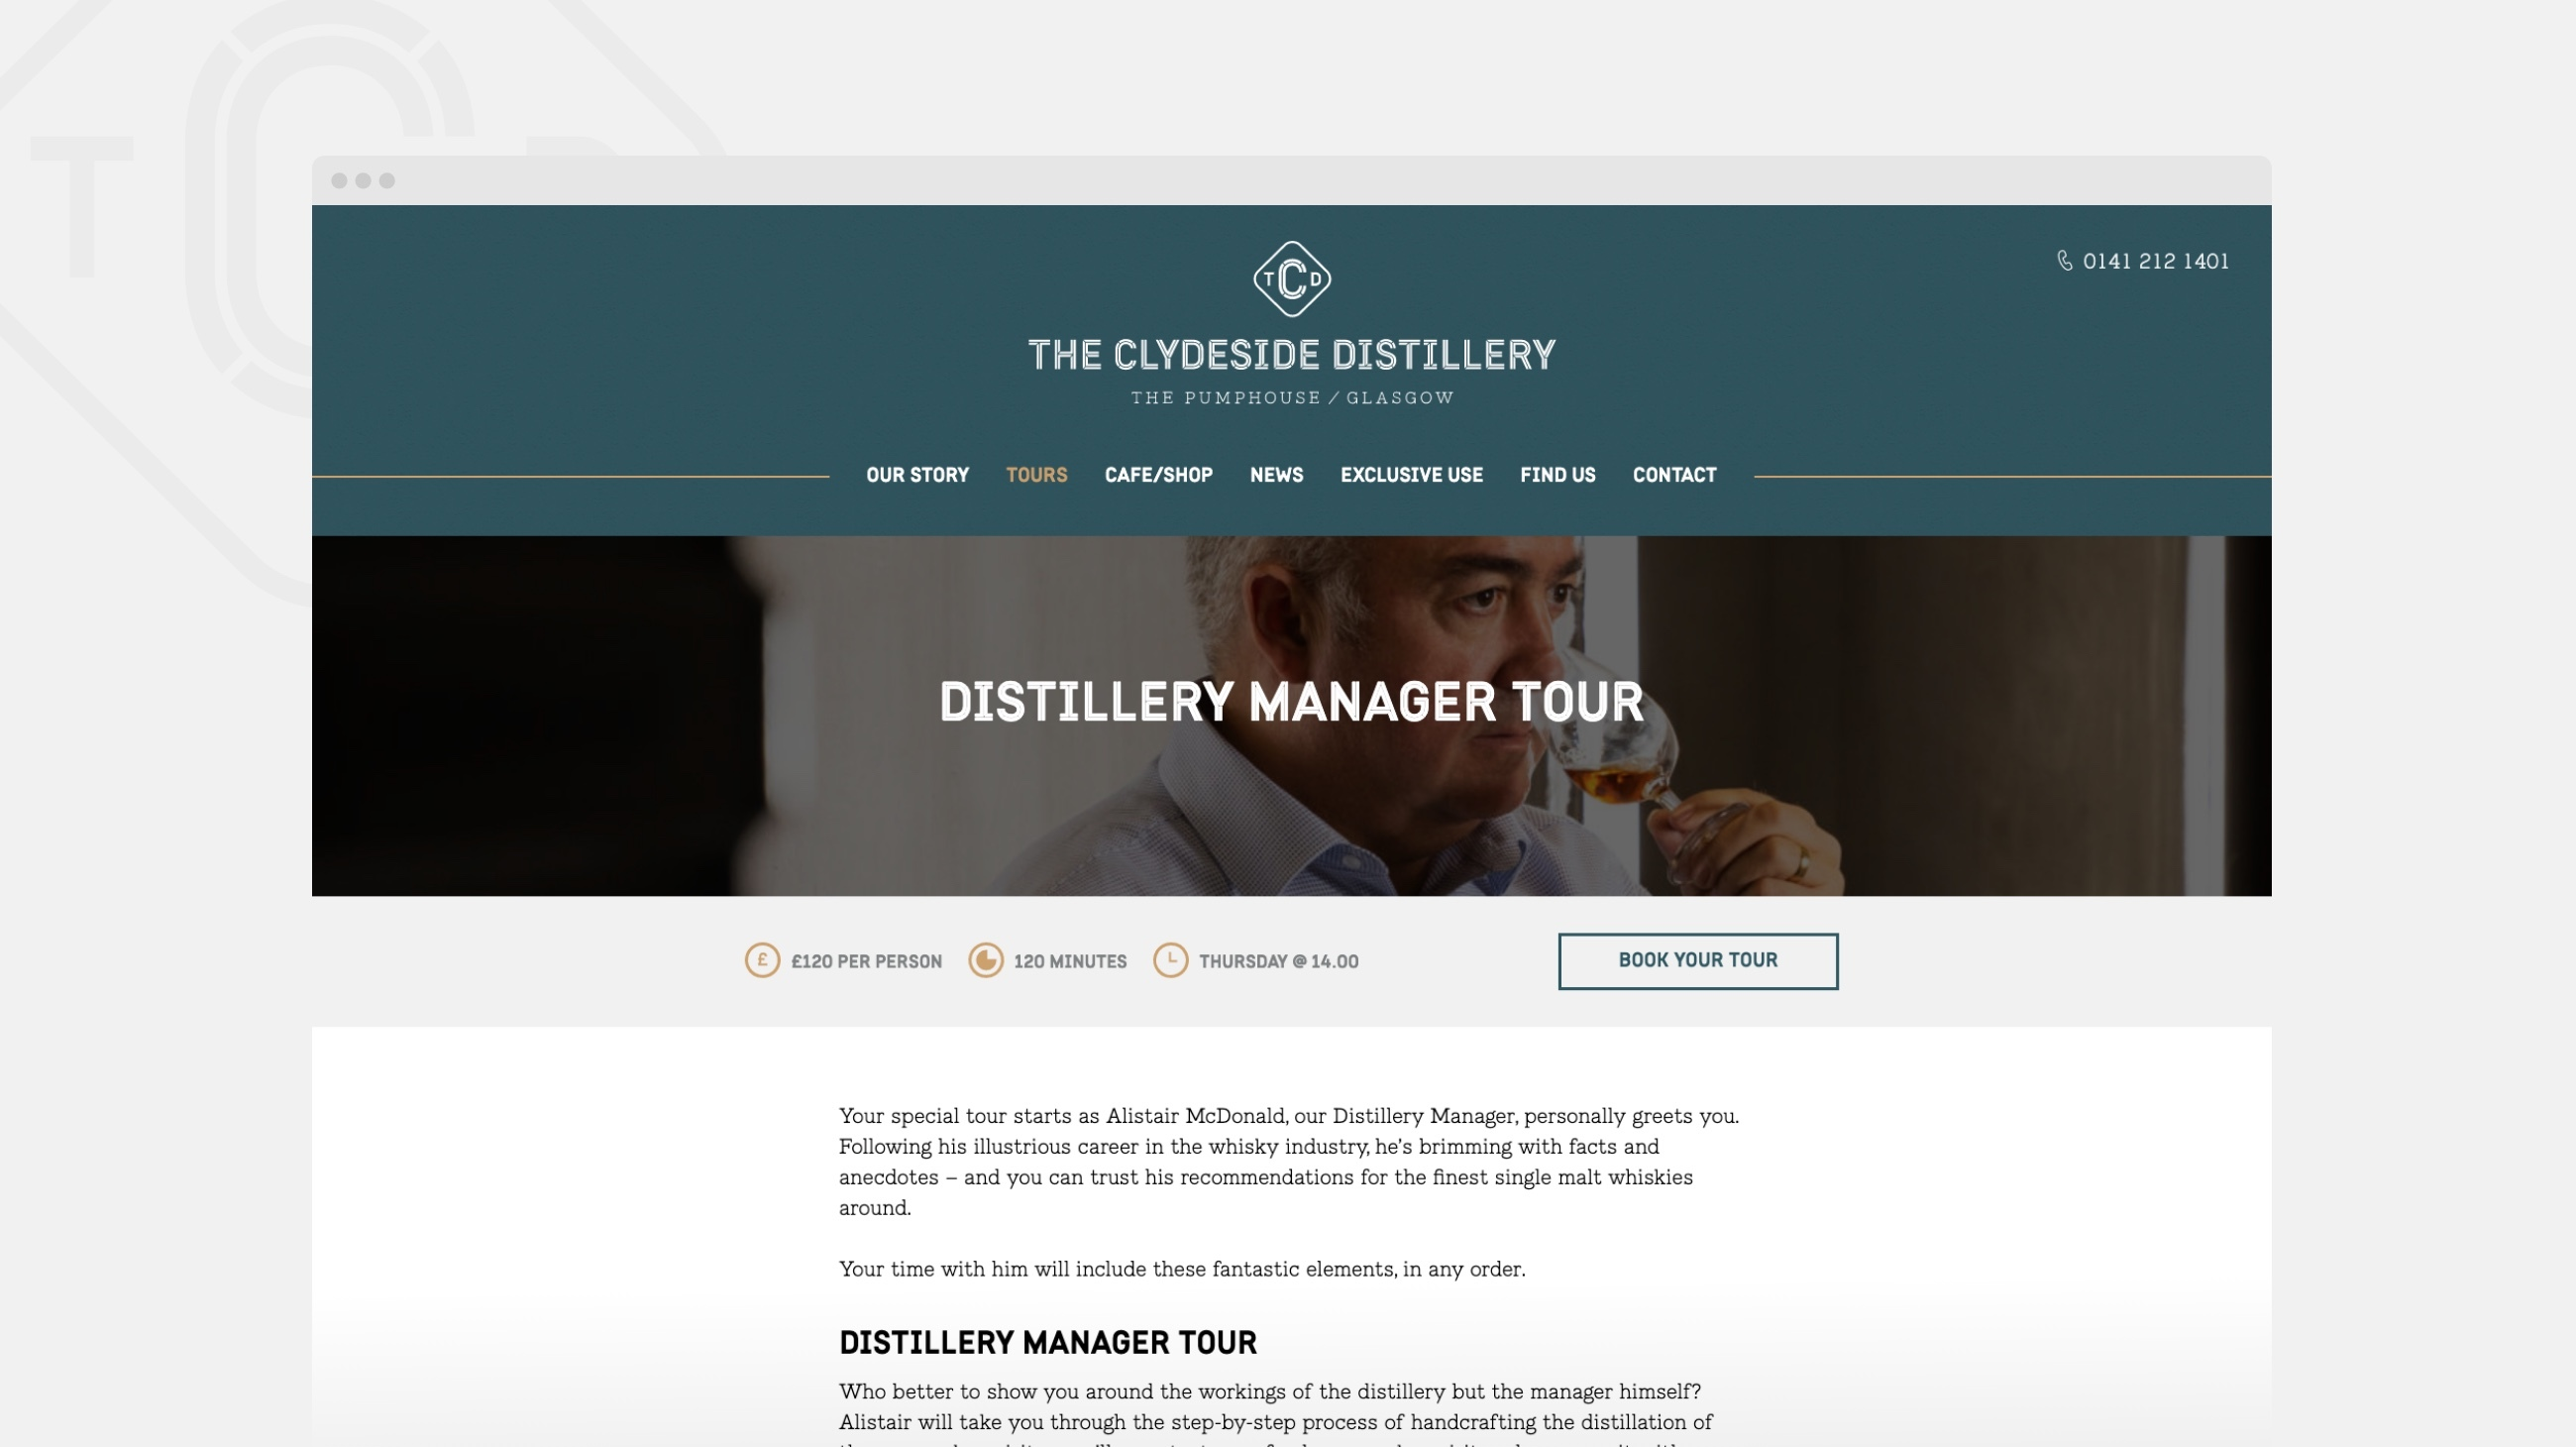 The Clydeside Distillery Desktop